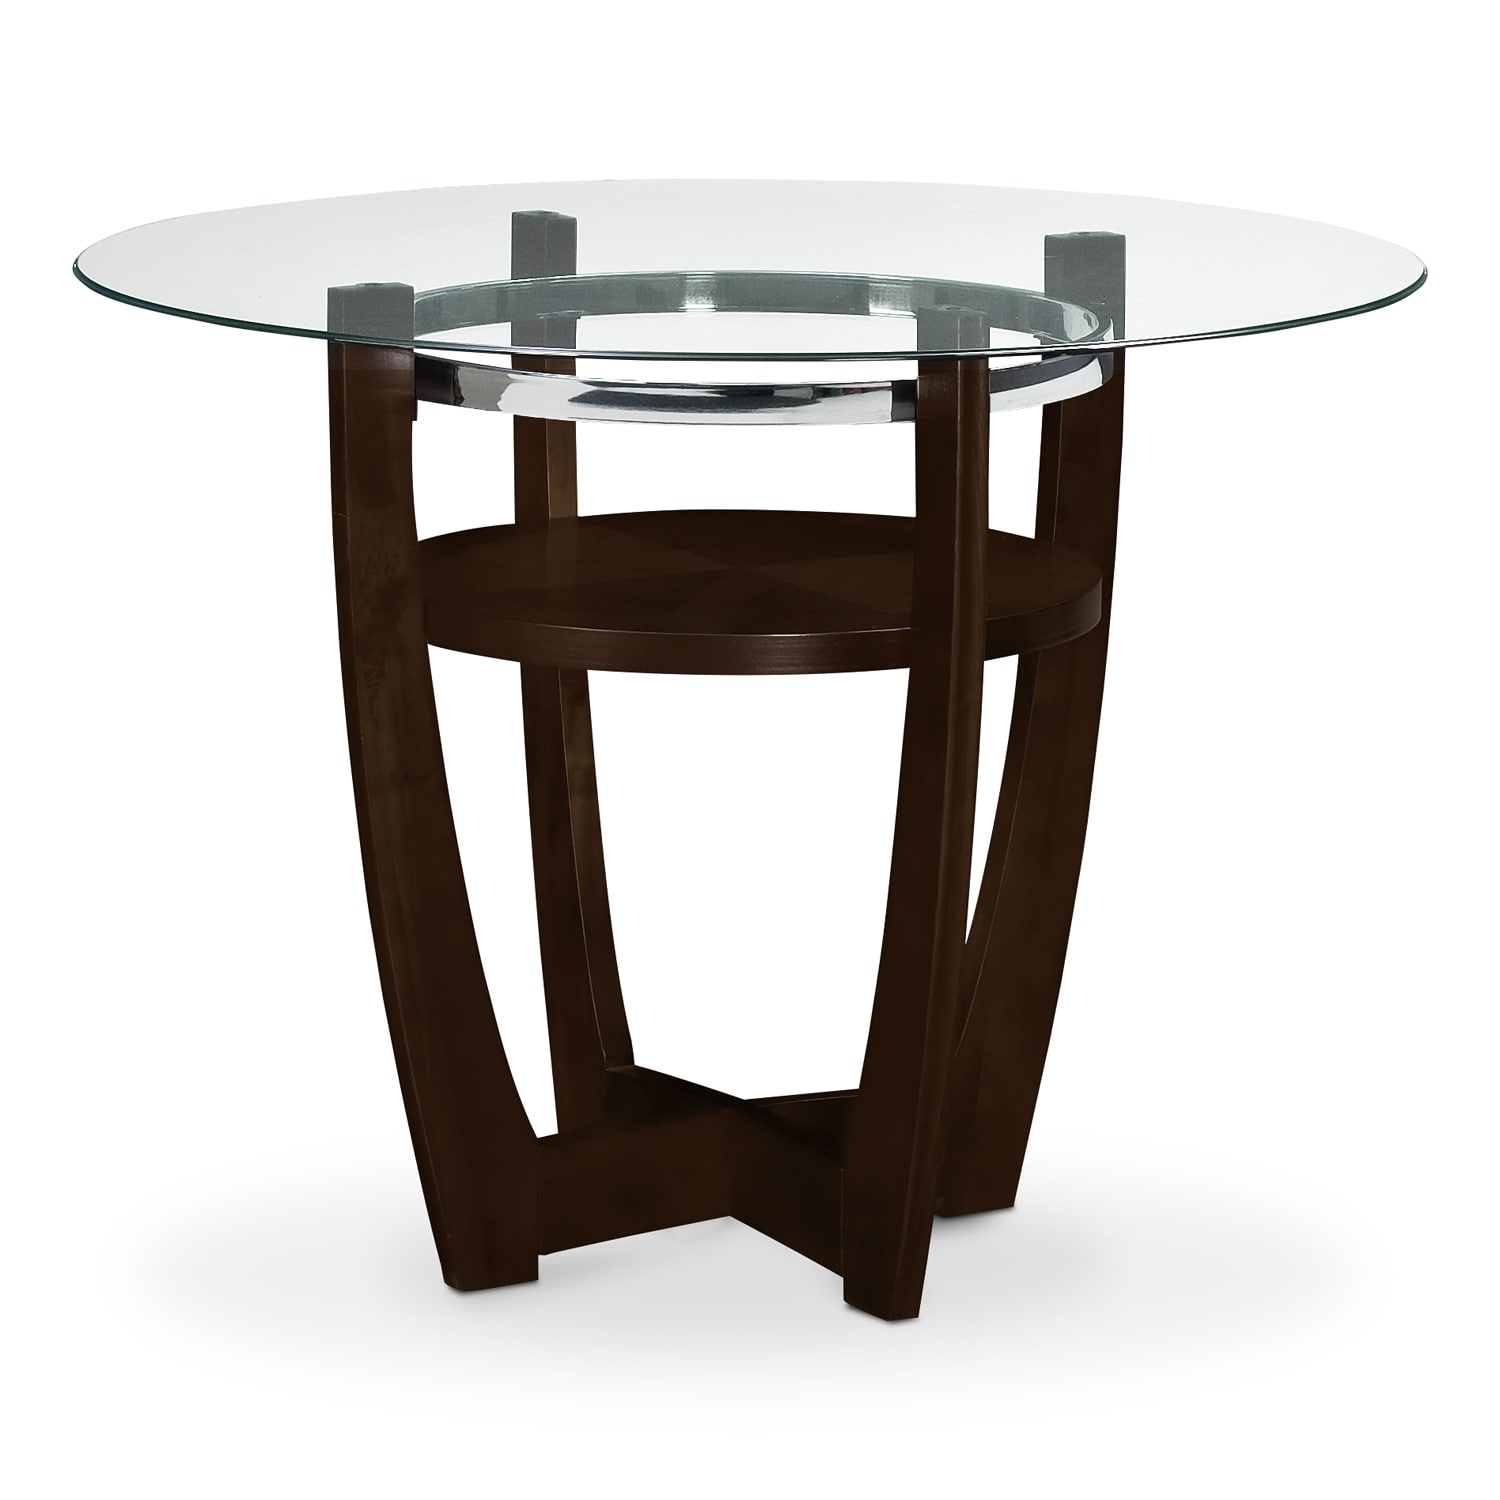 Alcove Counter-Height Table - Merlot | Value City Furniture